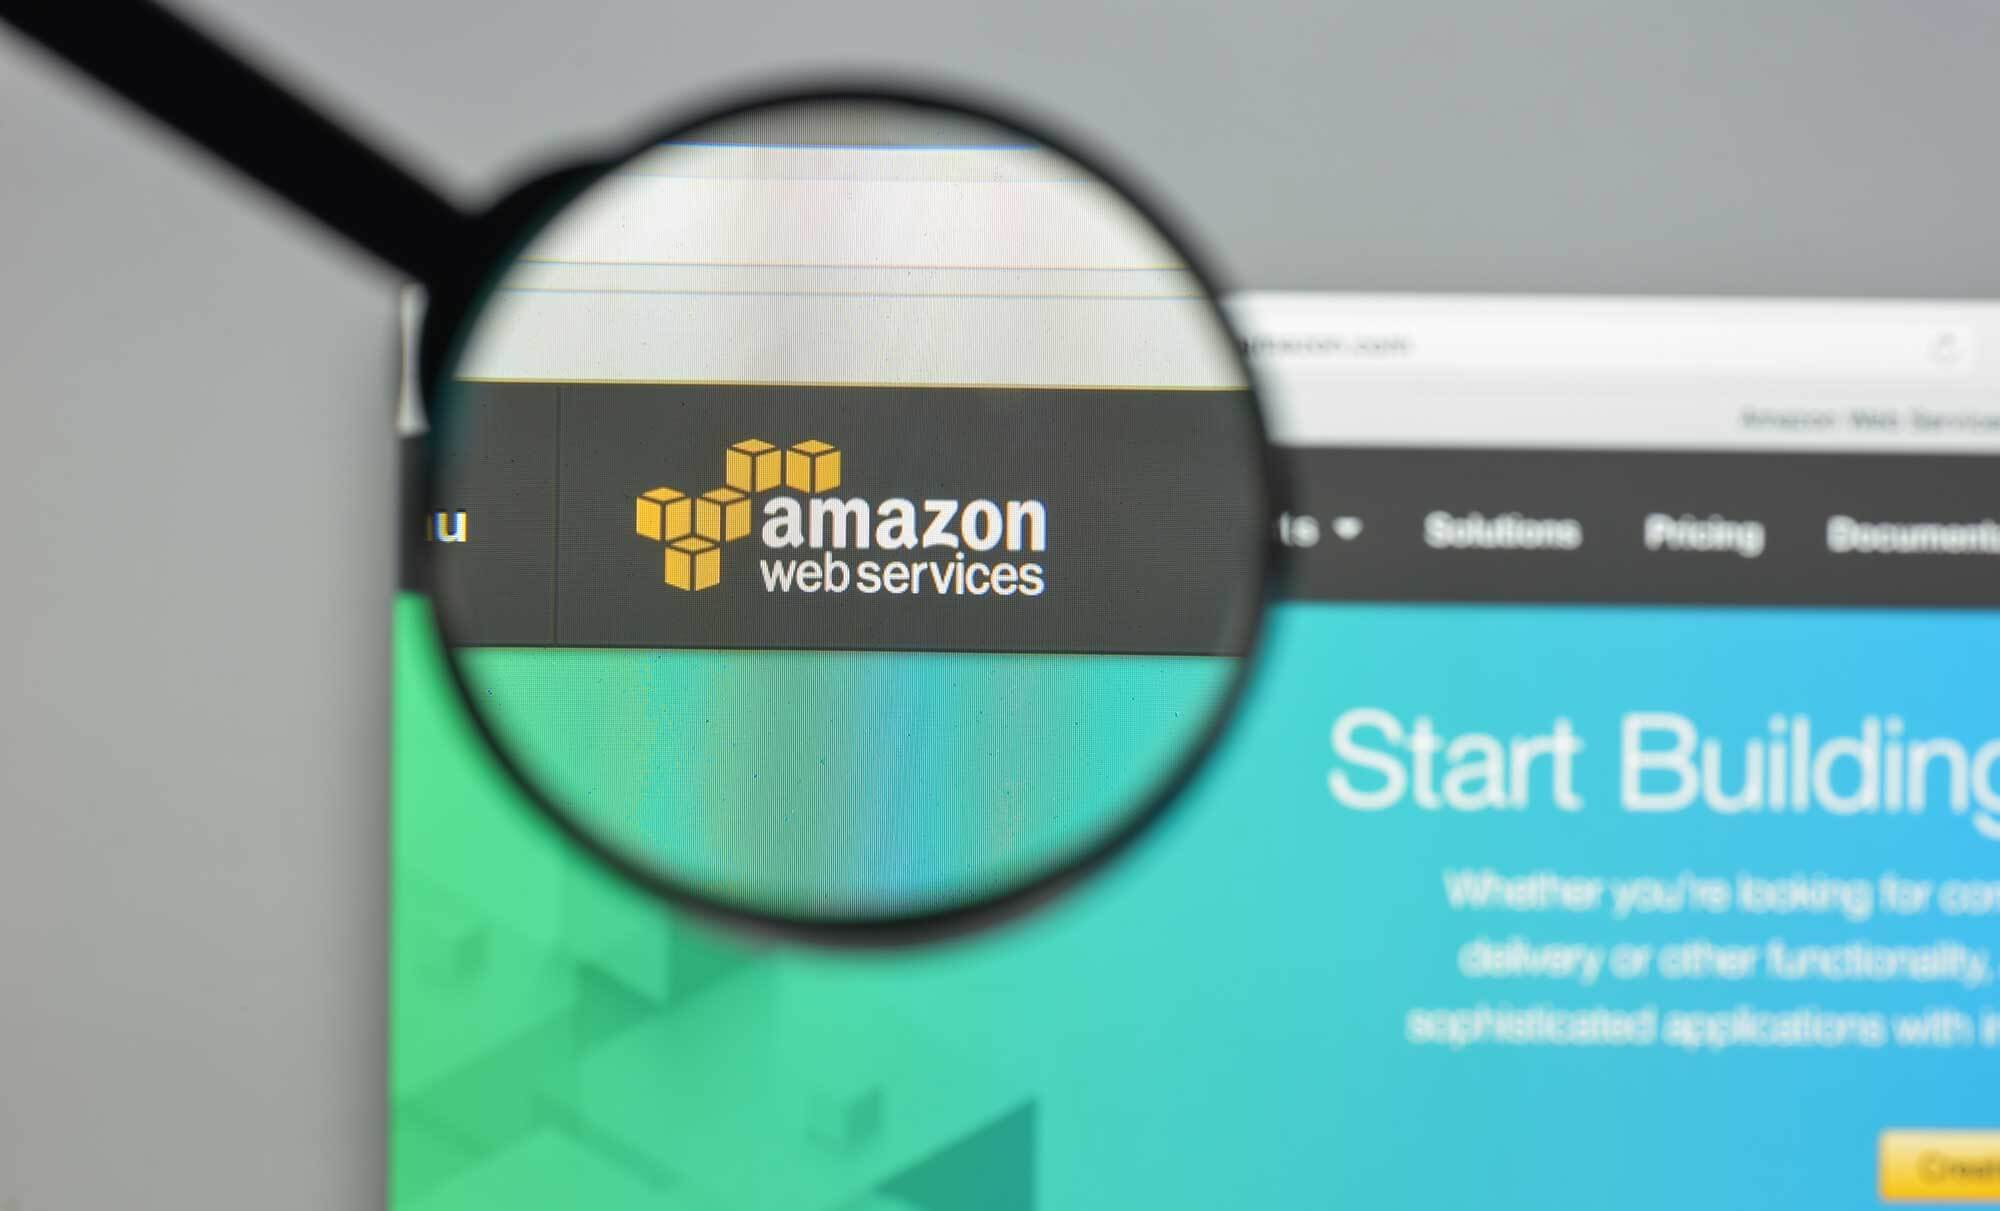 Indexima is on the AWS marketplace